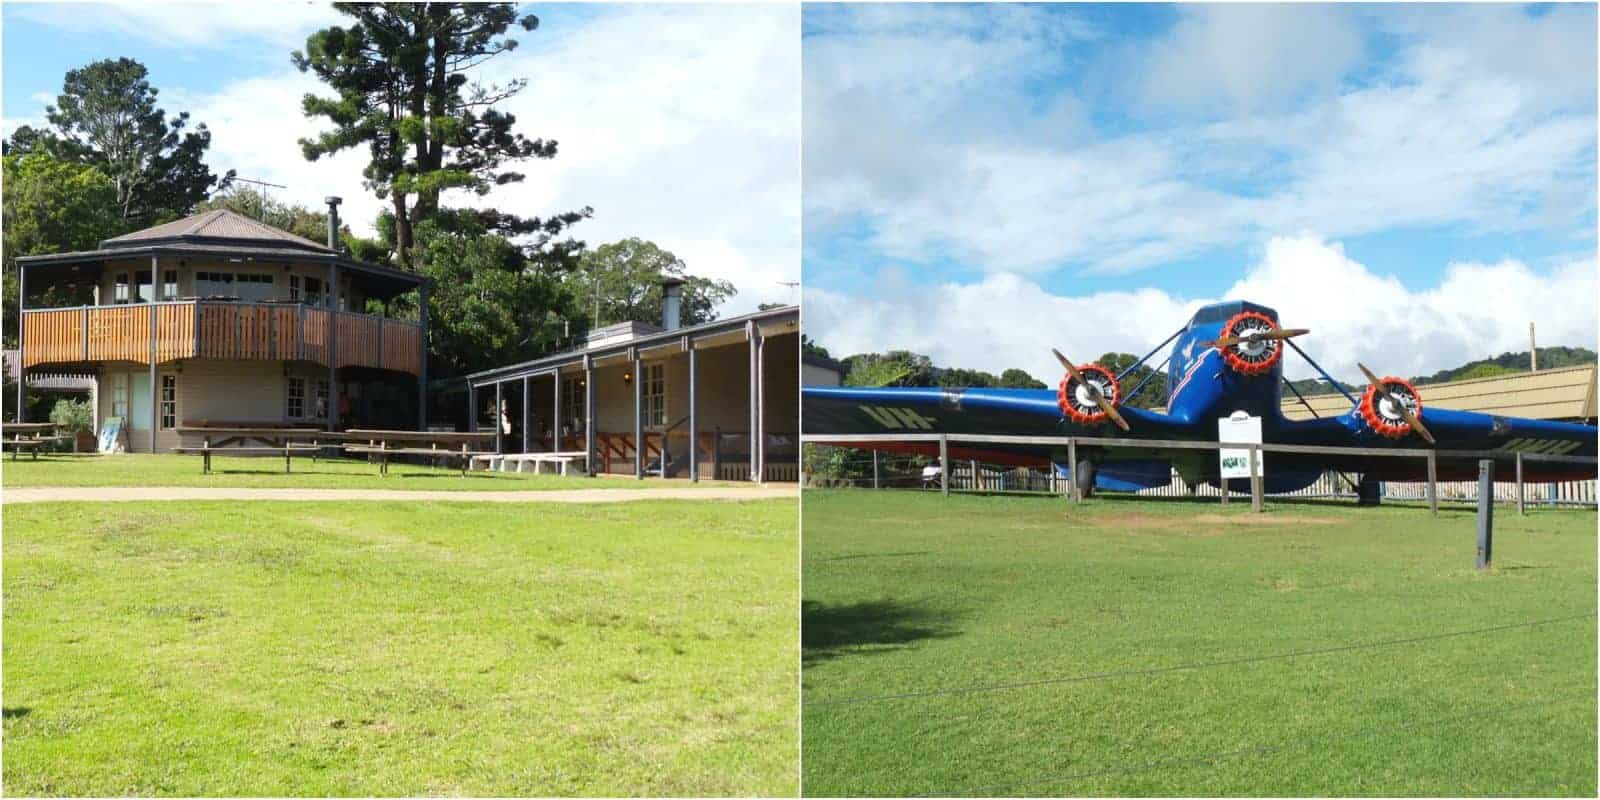 Exterior shot of O'Reilly's Rainforest Retreat and of a replica plane that is outside in the grounds